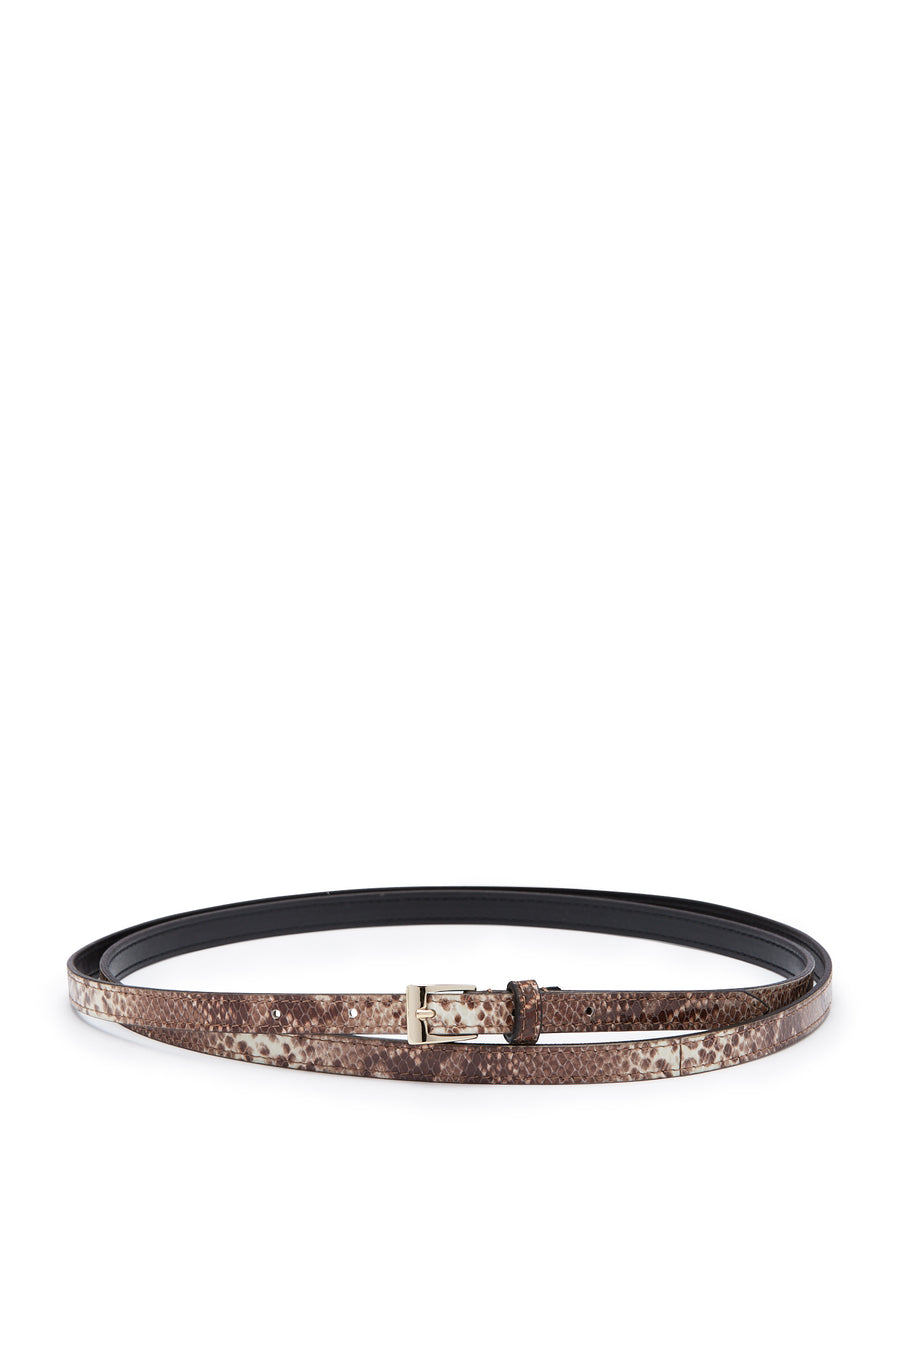 Double Wrap Belt, embossed python finish, Italian Leather. Buckle fastening, 1.2cm band width. Color Multi Brown Cafe